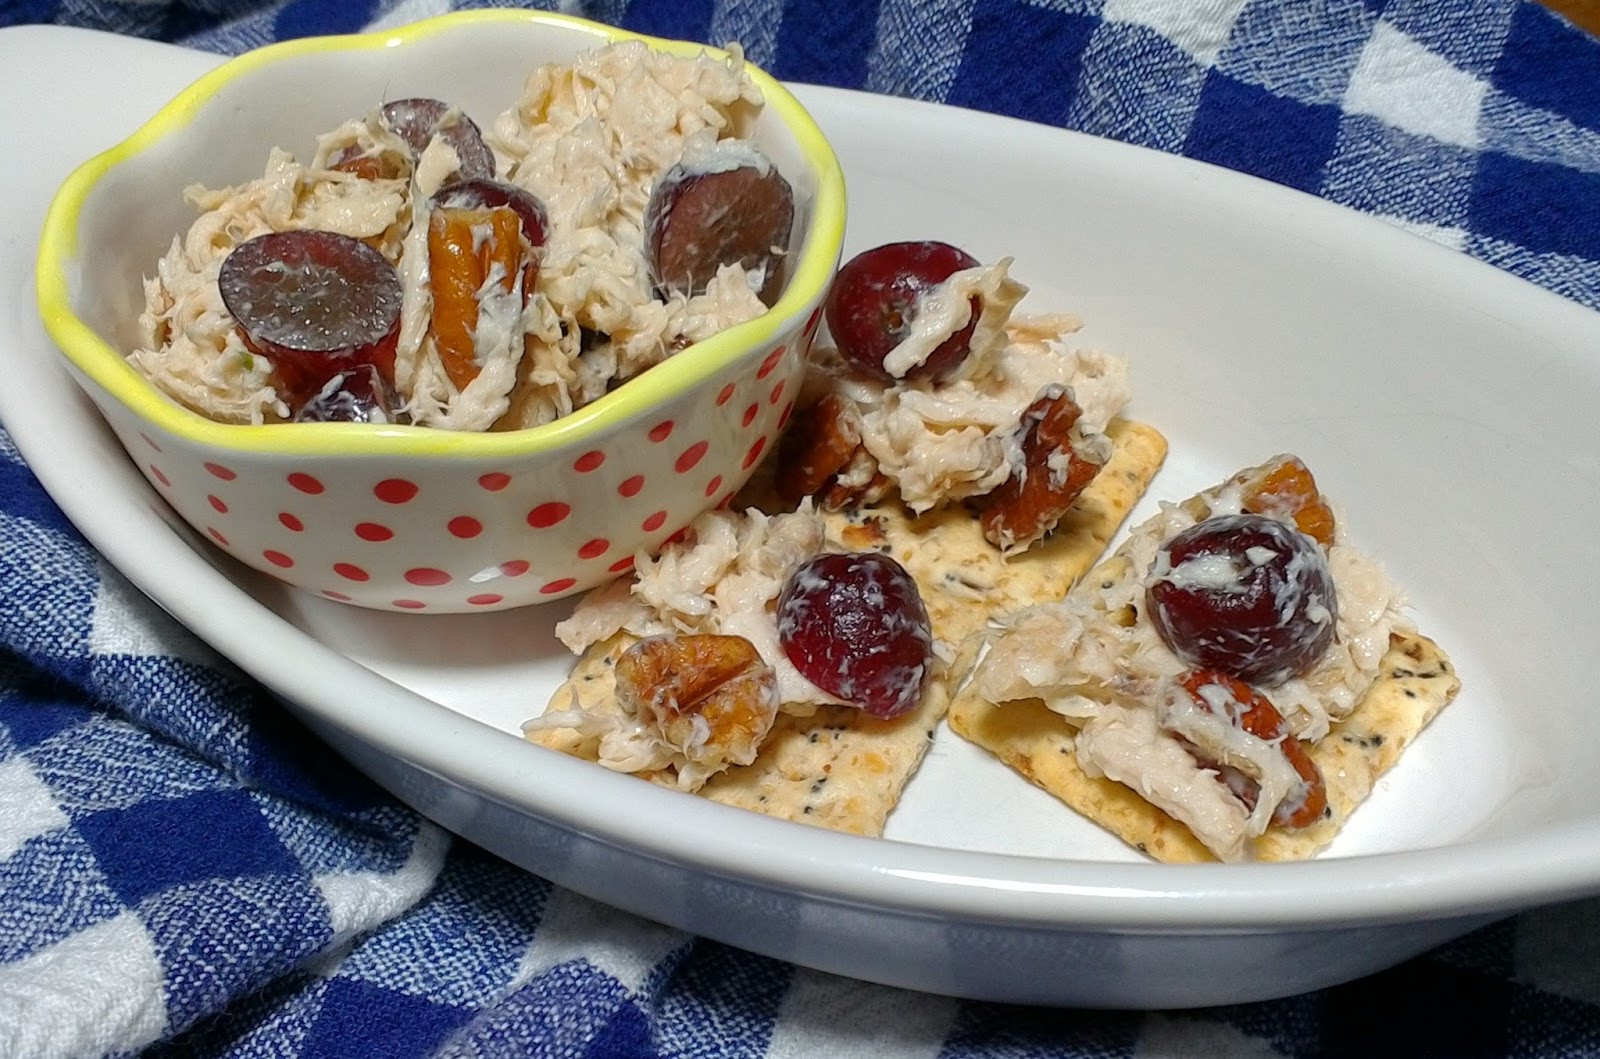 Cooking With Kary Chicken Salad With Red Grapes And Pecans - Cuisine pro 27